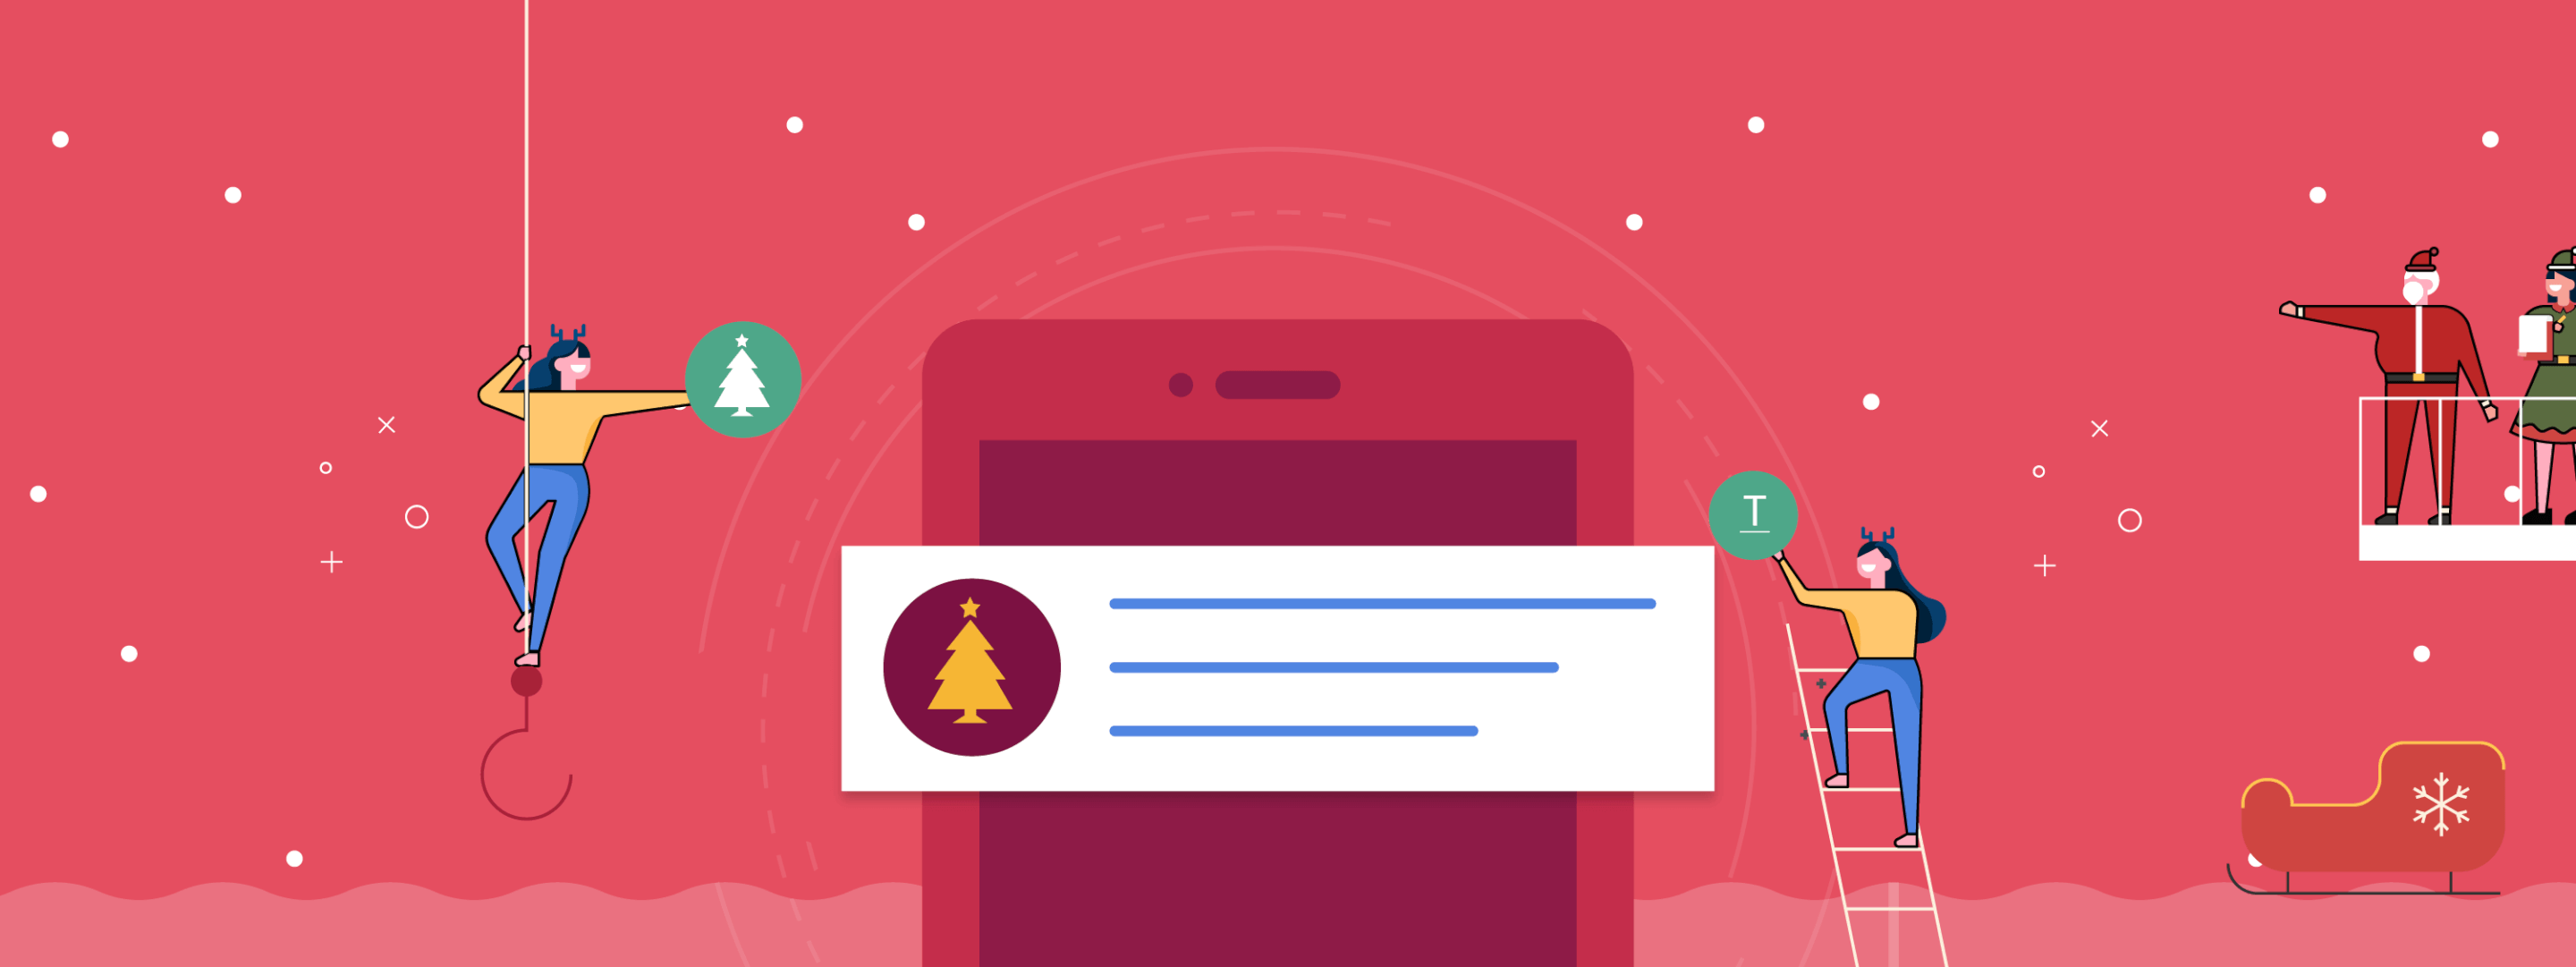 A 4-Step Guide to Launching a Last-Minute Christmas Marketing Campaign - ft. Marketing Automation